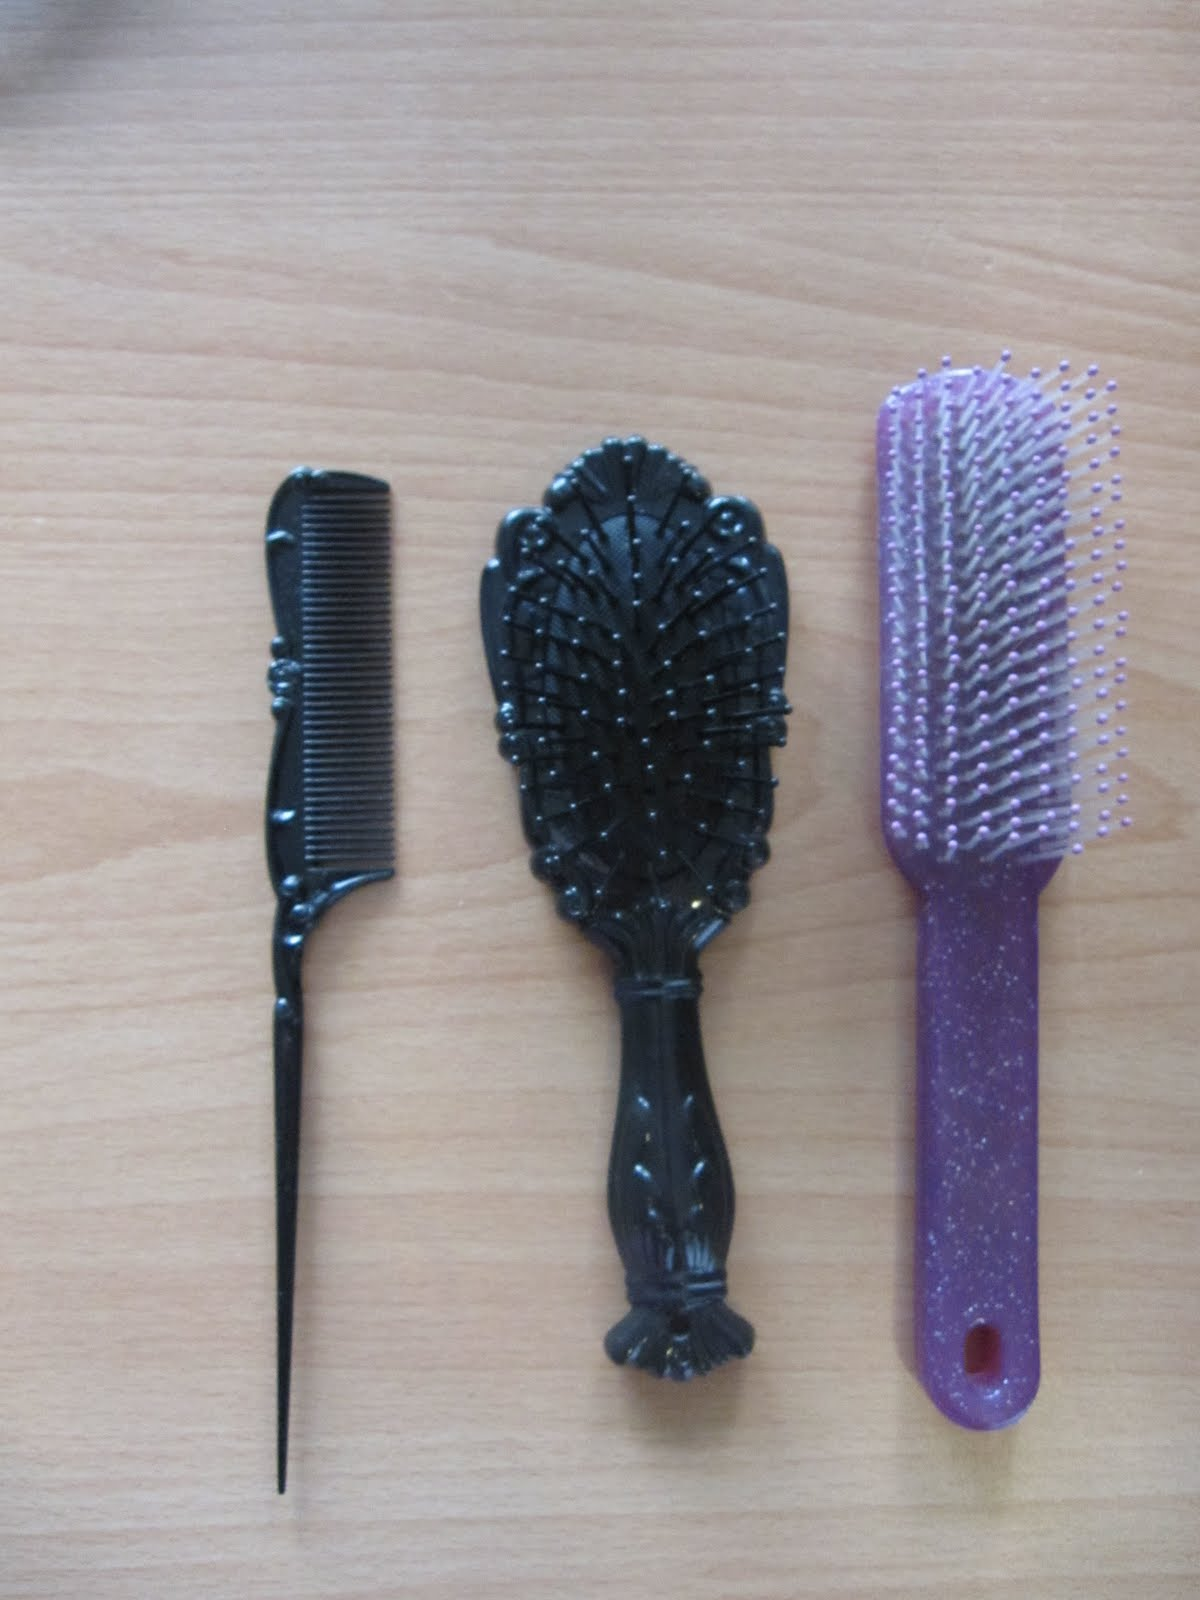 how to clean hair from hair brush